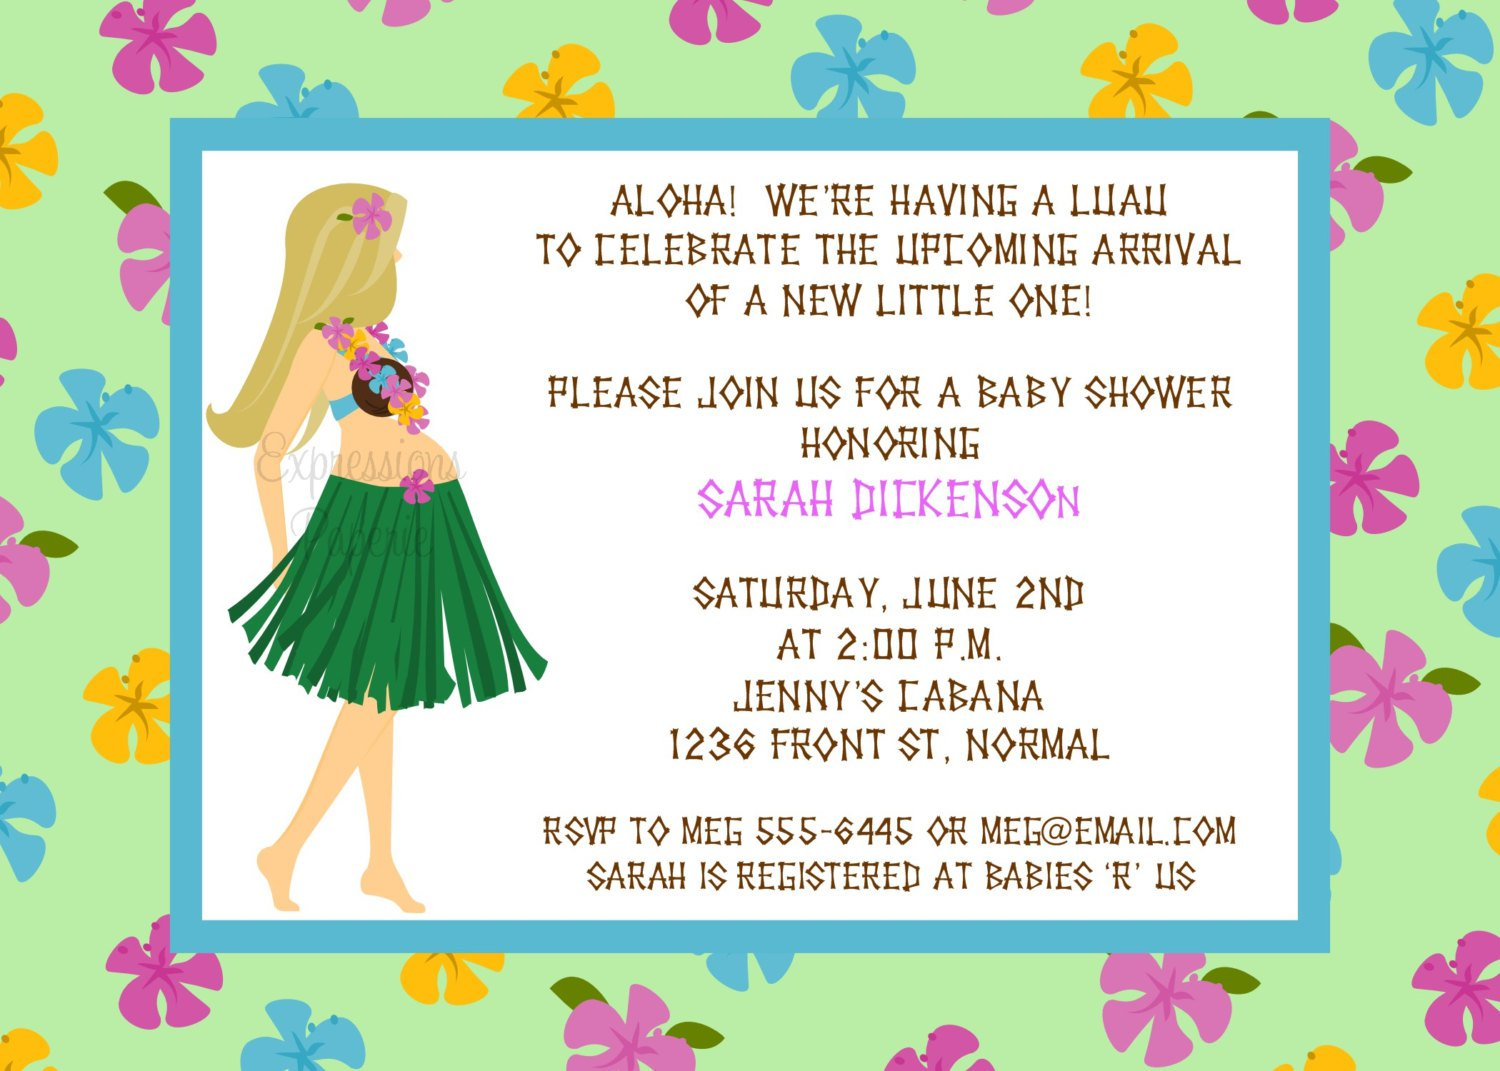 Tropical Themed Party Ideas Free Printables: Luau Bridal Shower Printable Invitation Templates Free